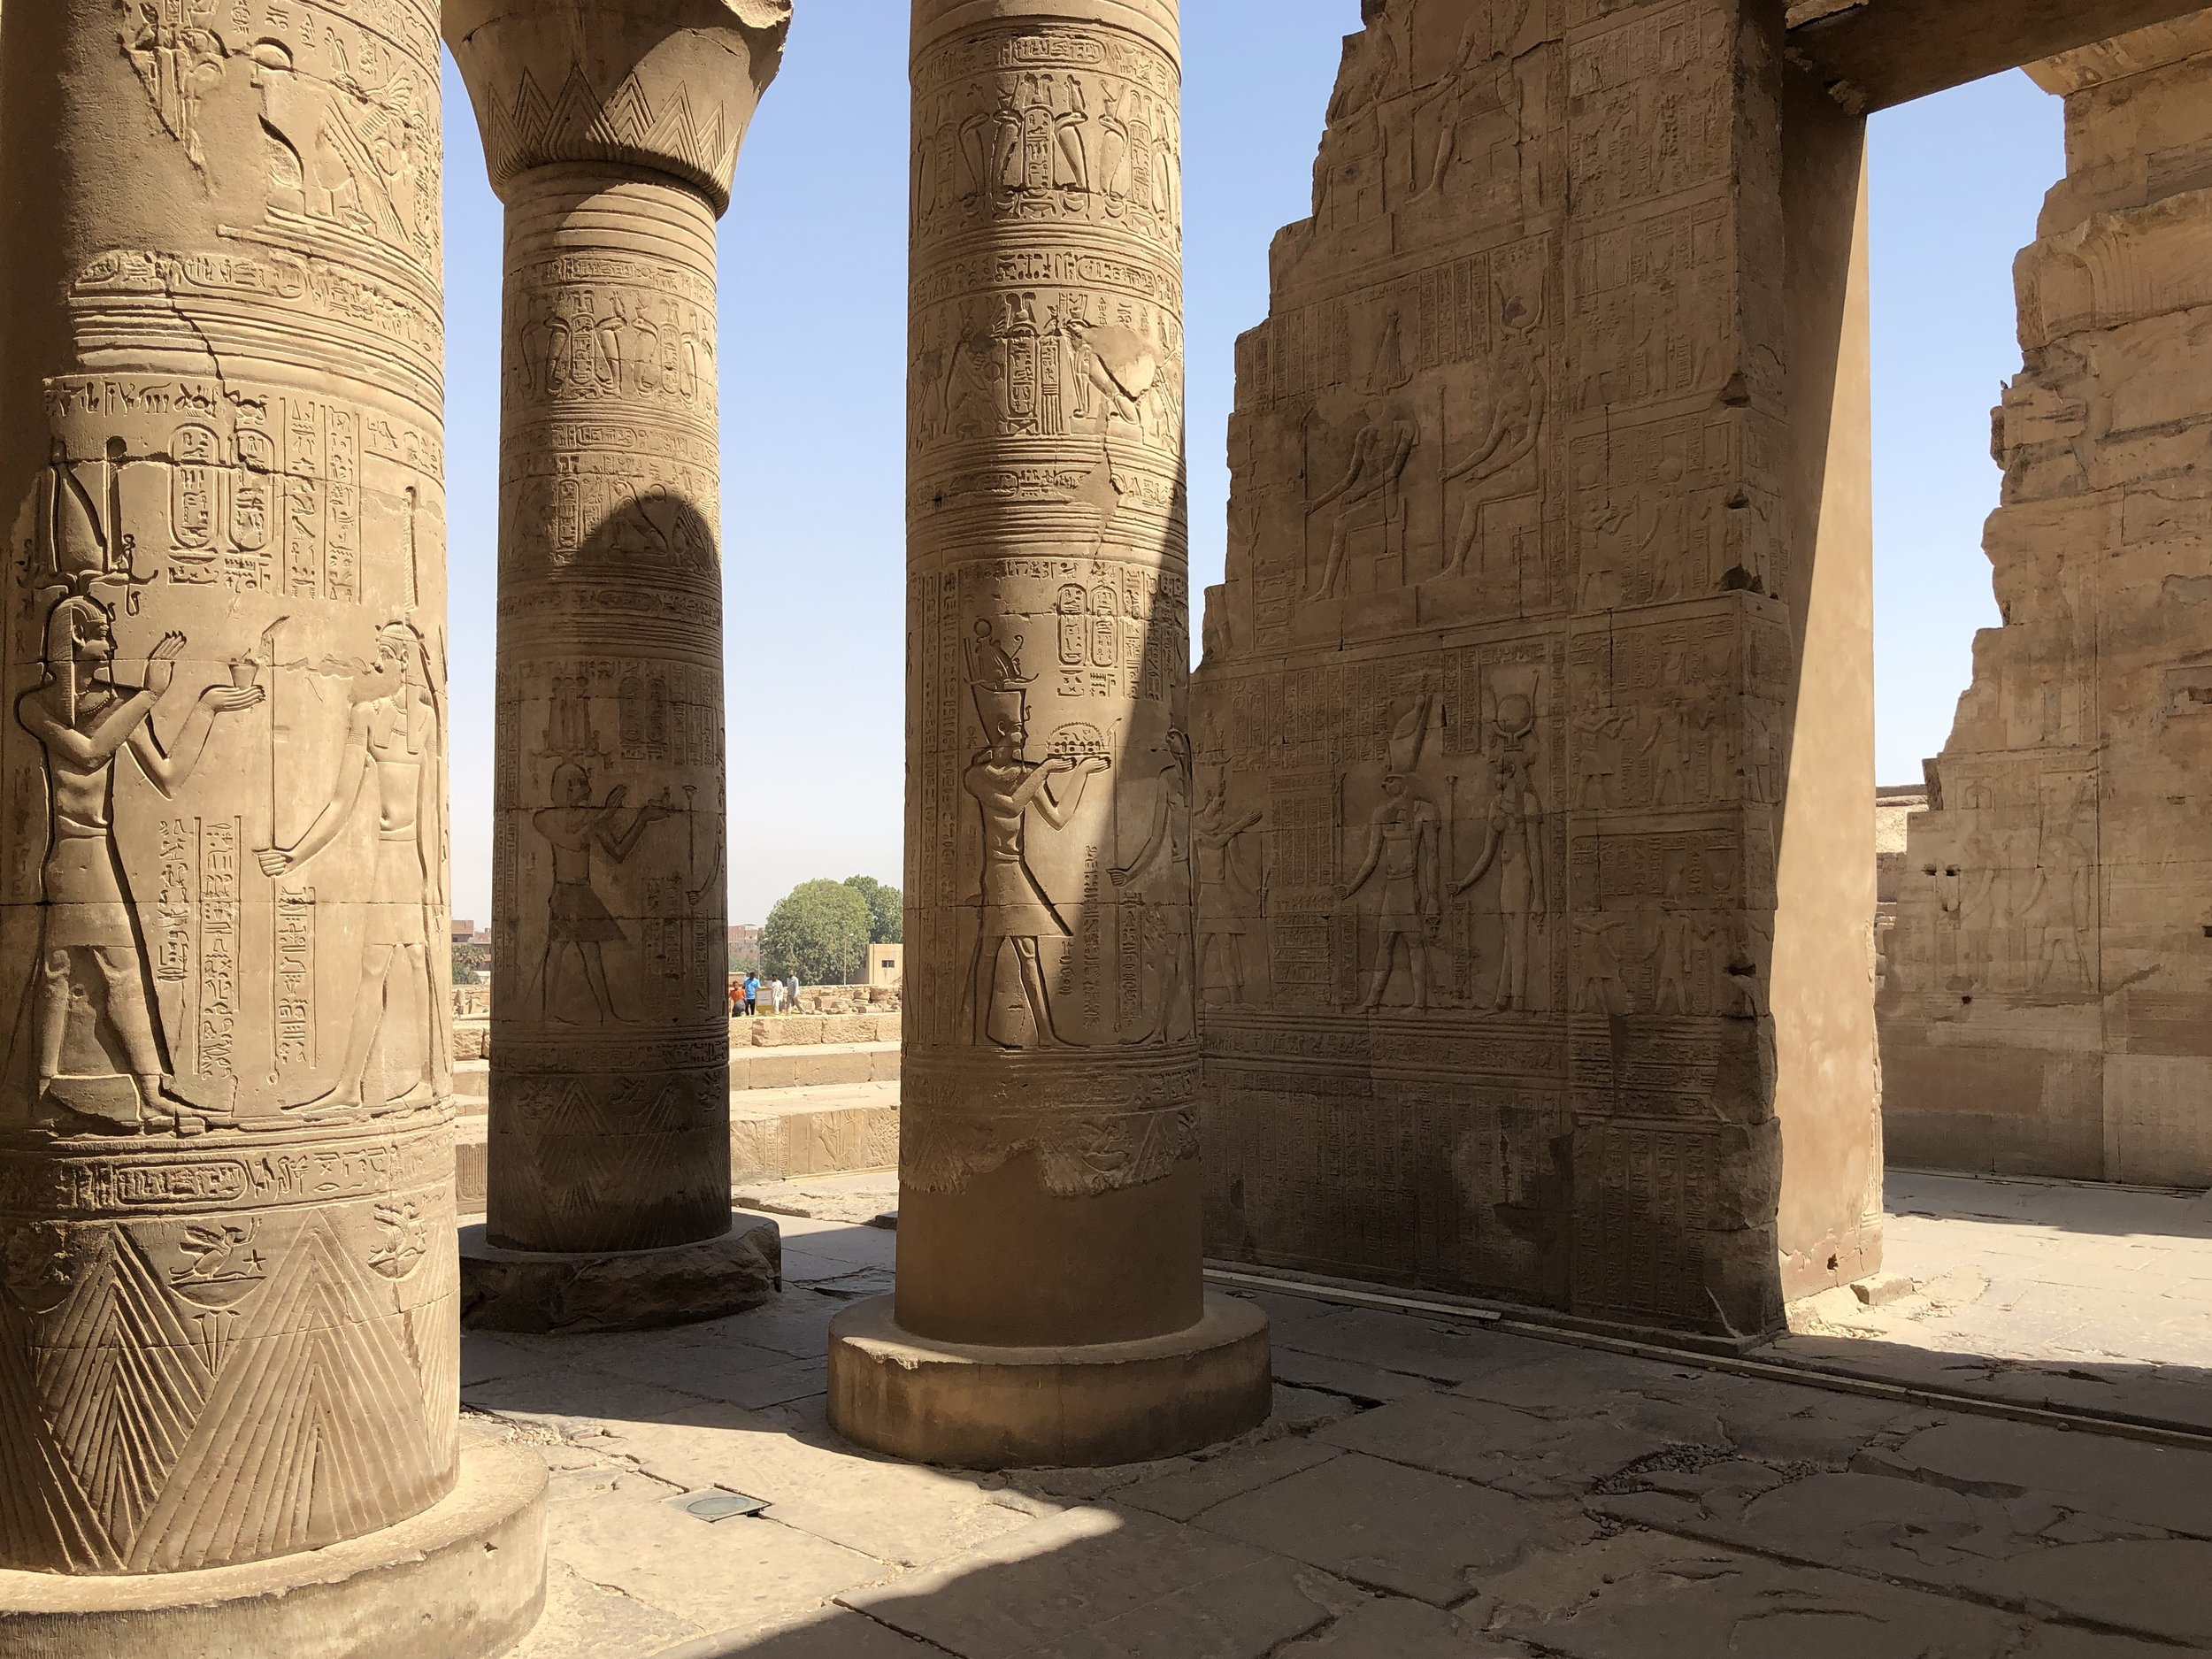 Kom Ombo also houses clinics. A sample treatment was to squeeze onion juice into the eye to treat irritations